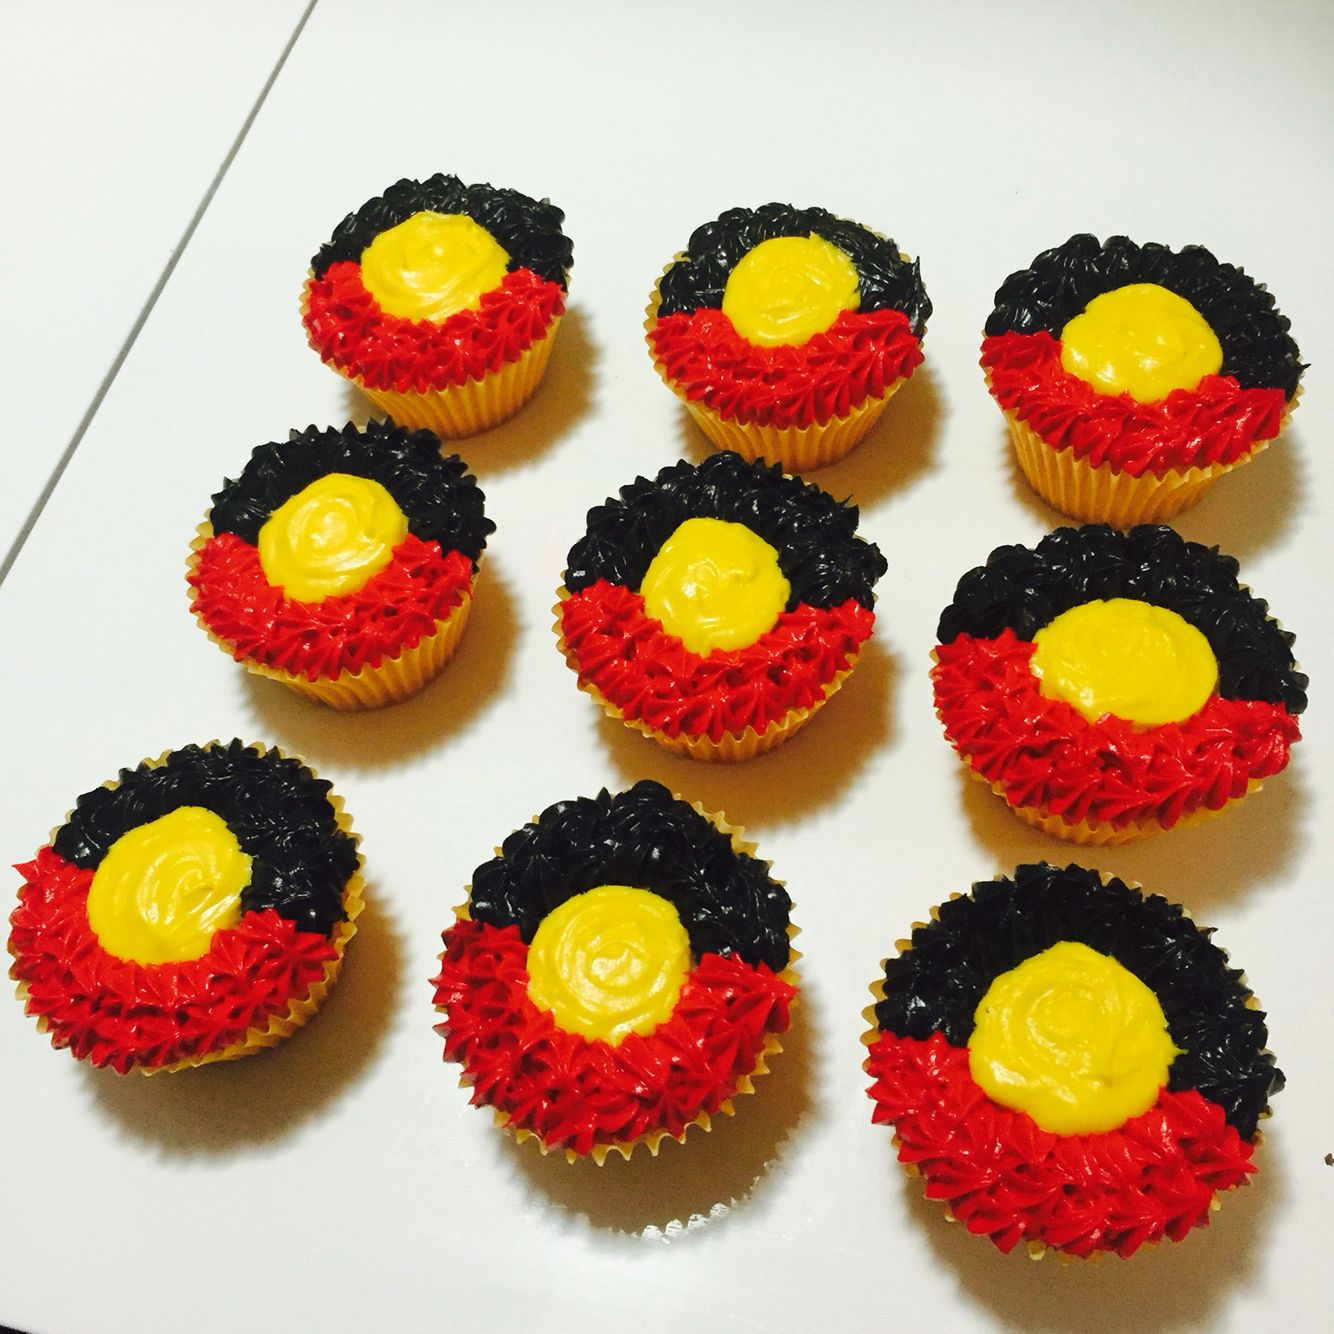 NAIDOC Week Cupcakes Aboriginal Flag